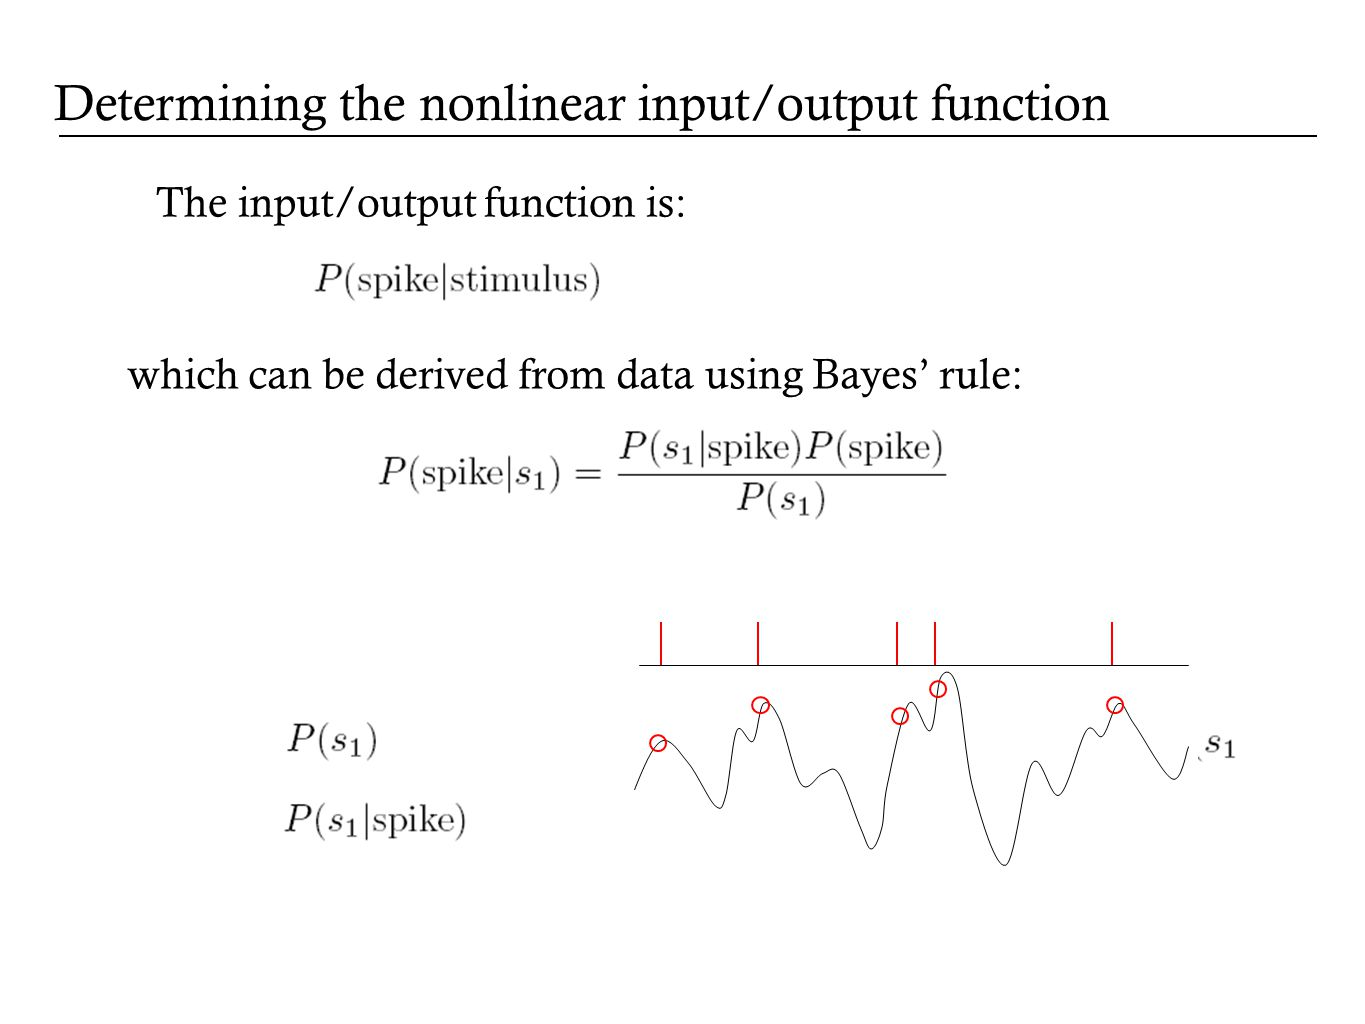 The input/output function is: which can be derived from data using Bayes rule: Determining the nonlinear input/output function